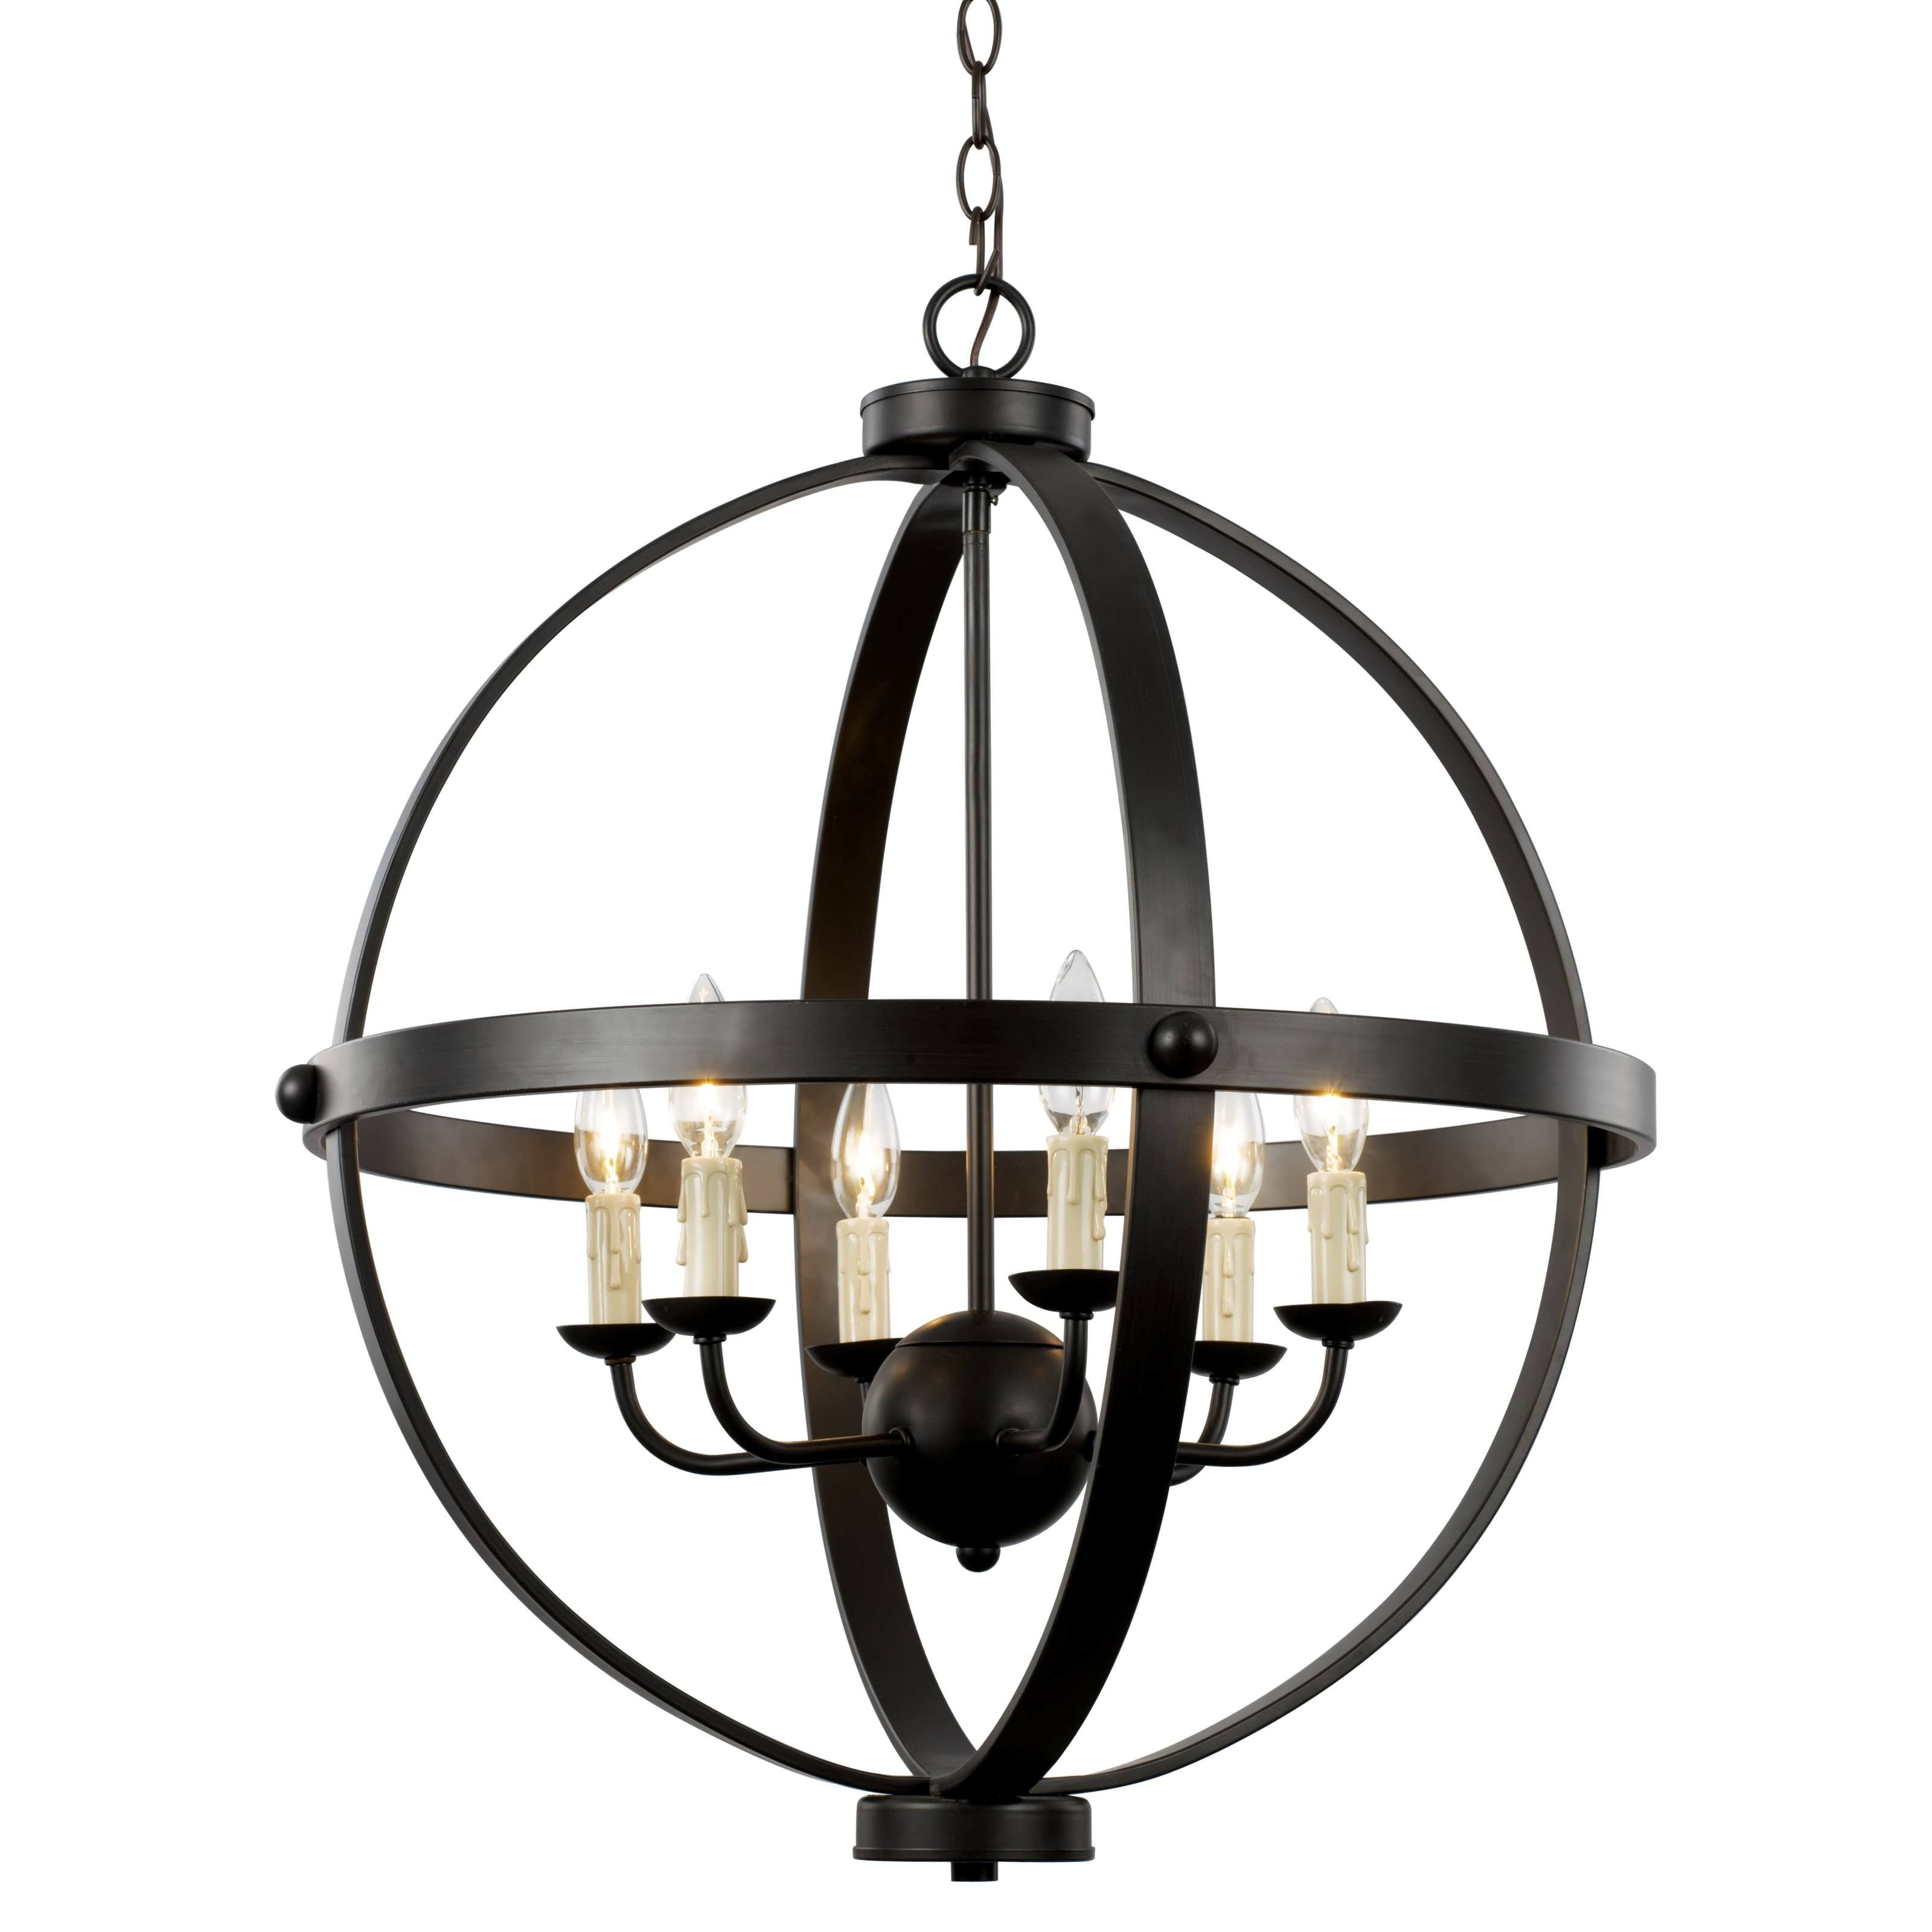 Best And Newest Metal Ball Chandeliers Pertaining To Chandeliers Design : Amazing Glass Ball Chandelier Modern Orb (View 3 of 20)